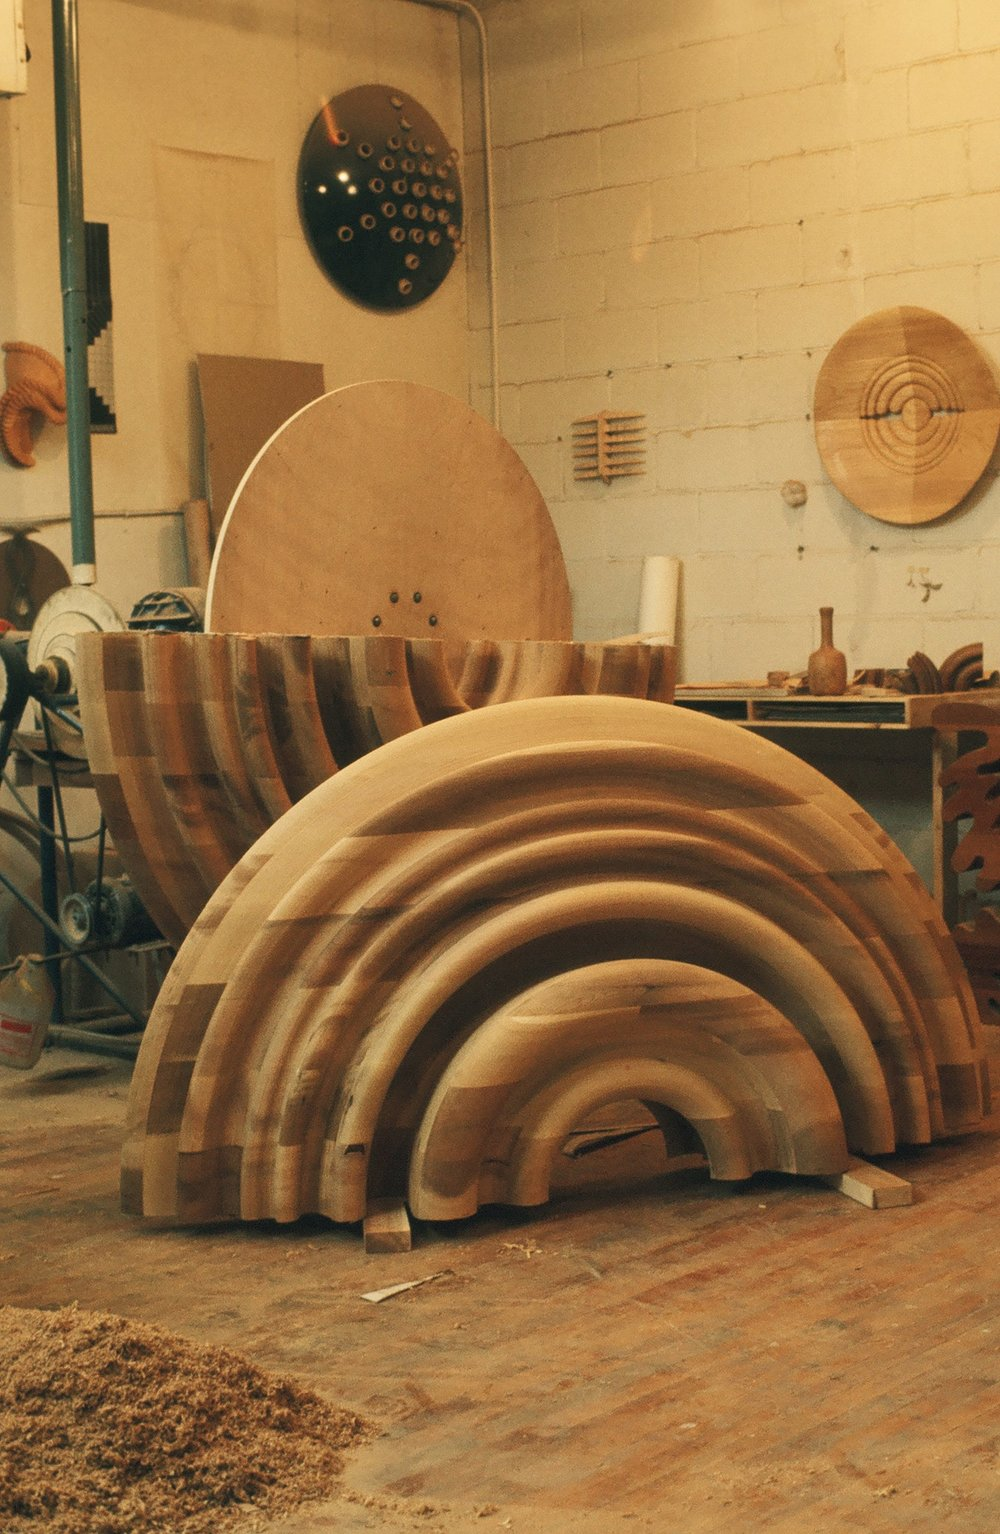 Fig. 10.  Stephen Hogbin's faceplate turning in the process of being cut and reassembled to make his chairs, table, and two shelves, 1974. Photo: Stephen Hogbin